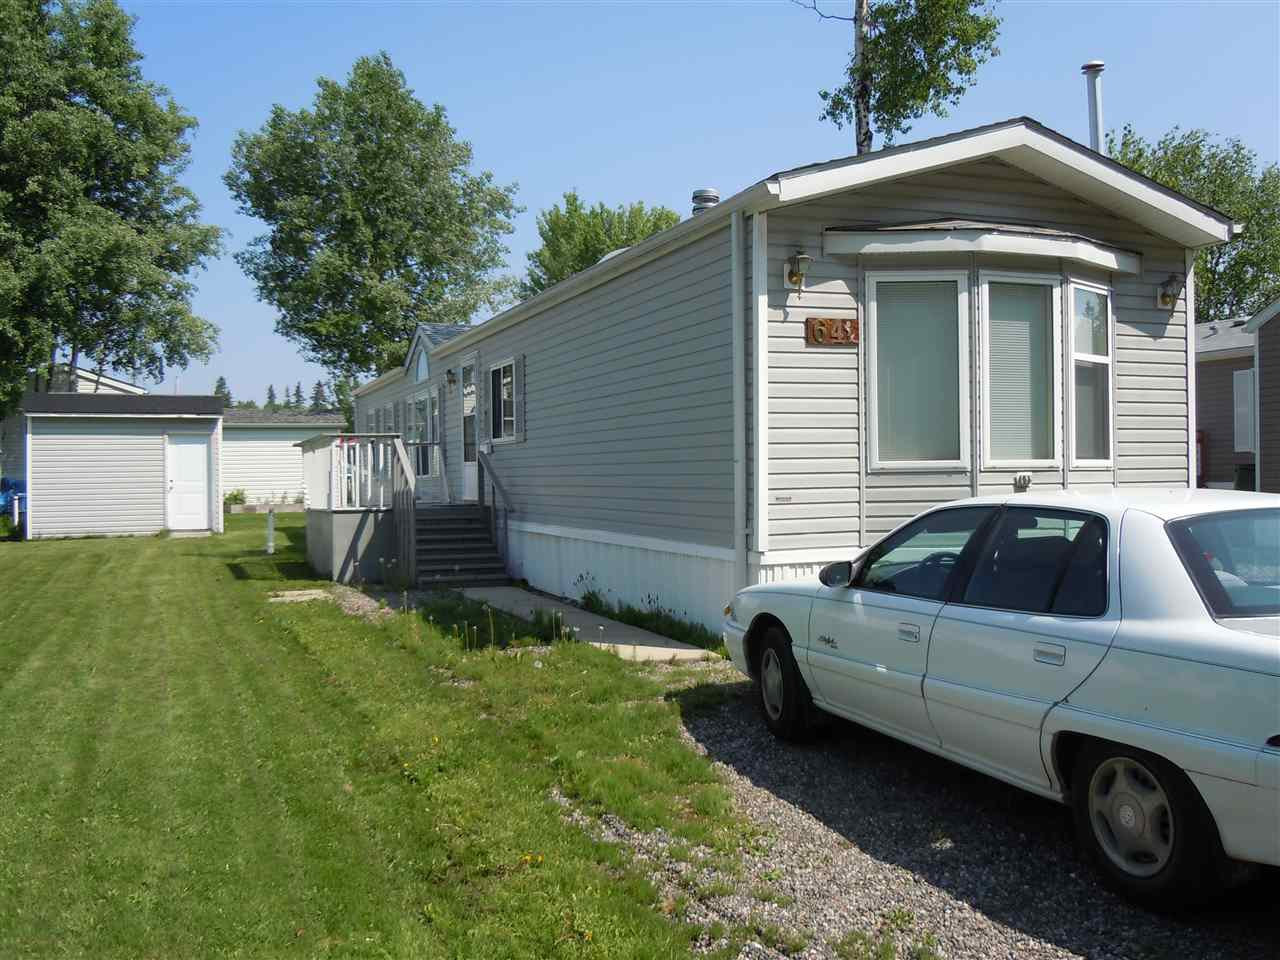 """Main Photo: 64 7817 S 97 Highway in Prince George: Sintich Manufactured Home for sale in """"SINTICH TRAILER PARK"""" (PG City South East (Zone 75))  : MLS®# R2375131"""